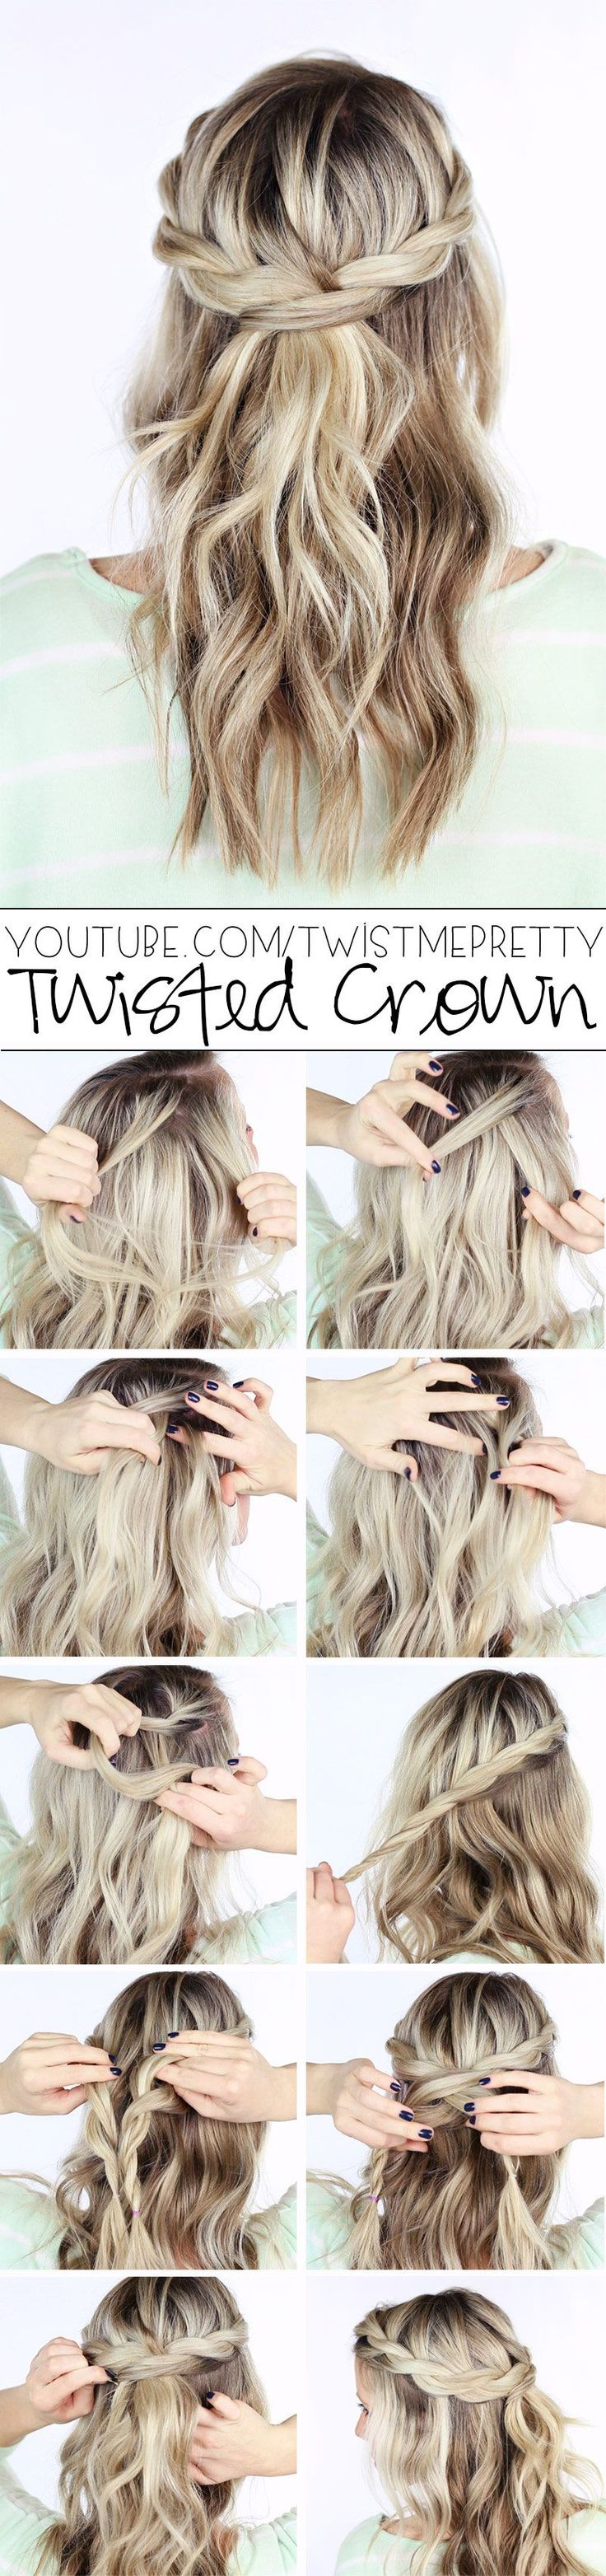 A gorgeous twisted crown braid tutorial that you can wear casual or save for those parties. Come checkout the easy to follow video tutorial and pictures